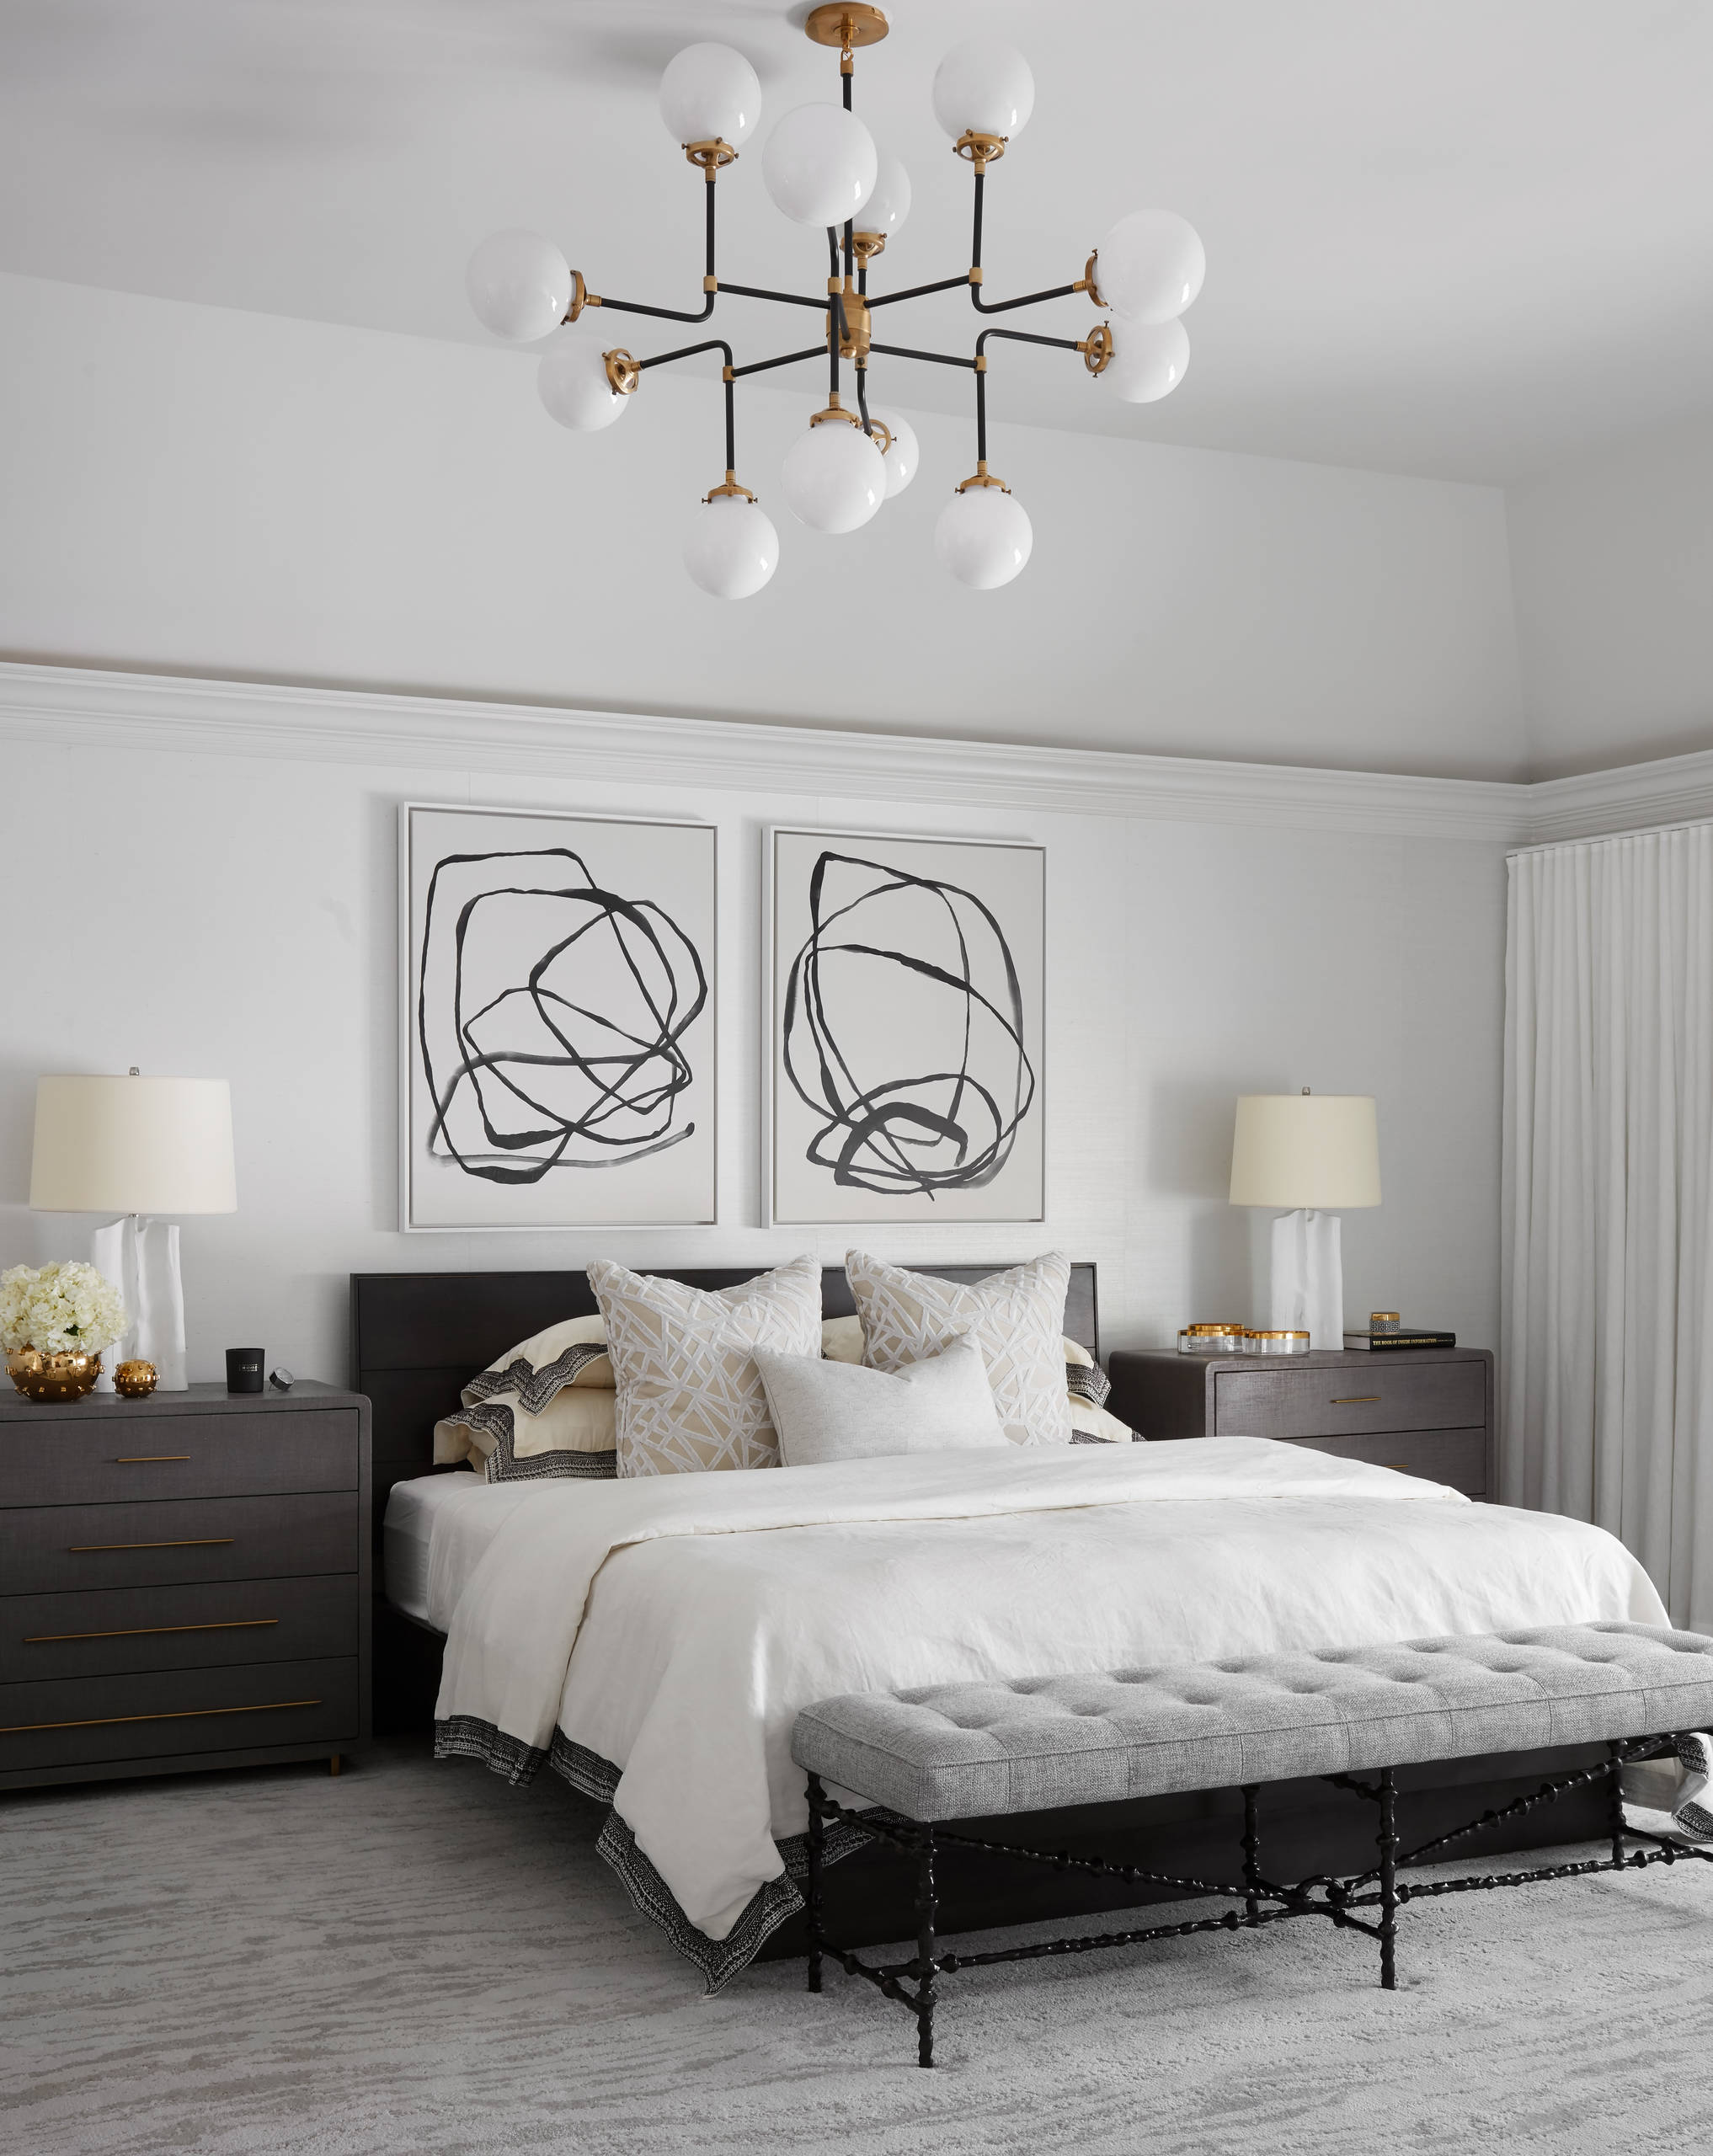 11 Beautiful Master Bedroom Pictures & Ideas - January, 11  Houzz